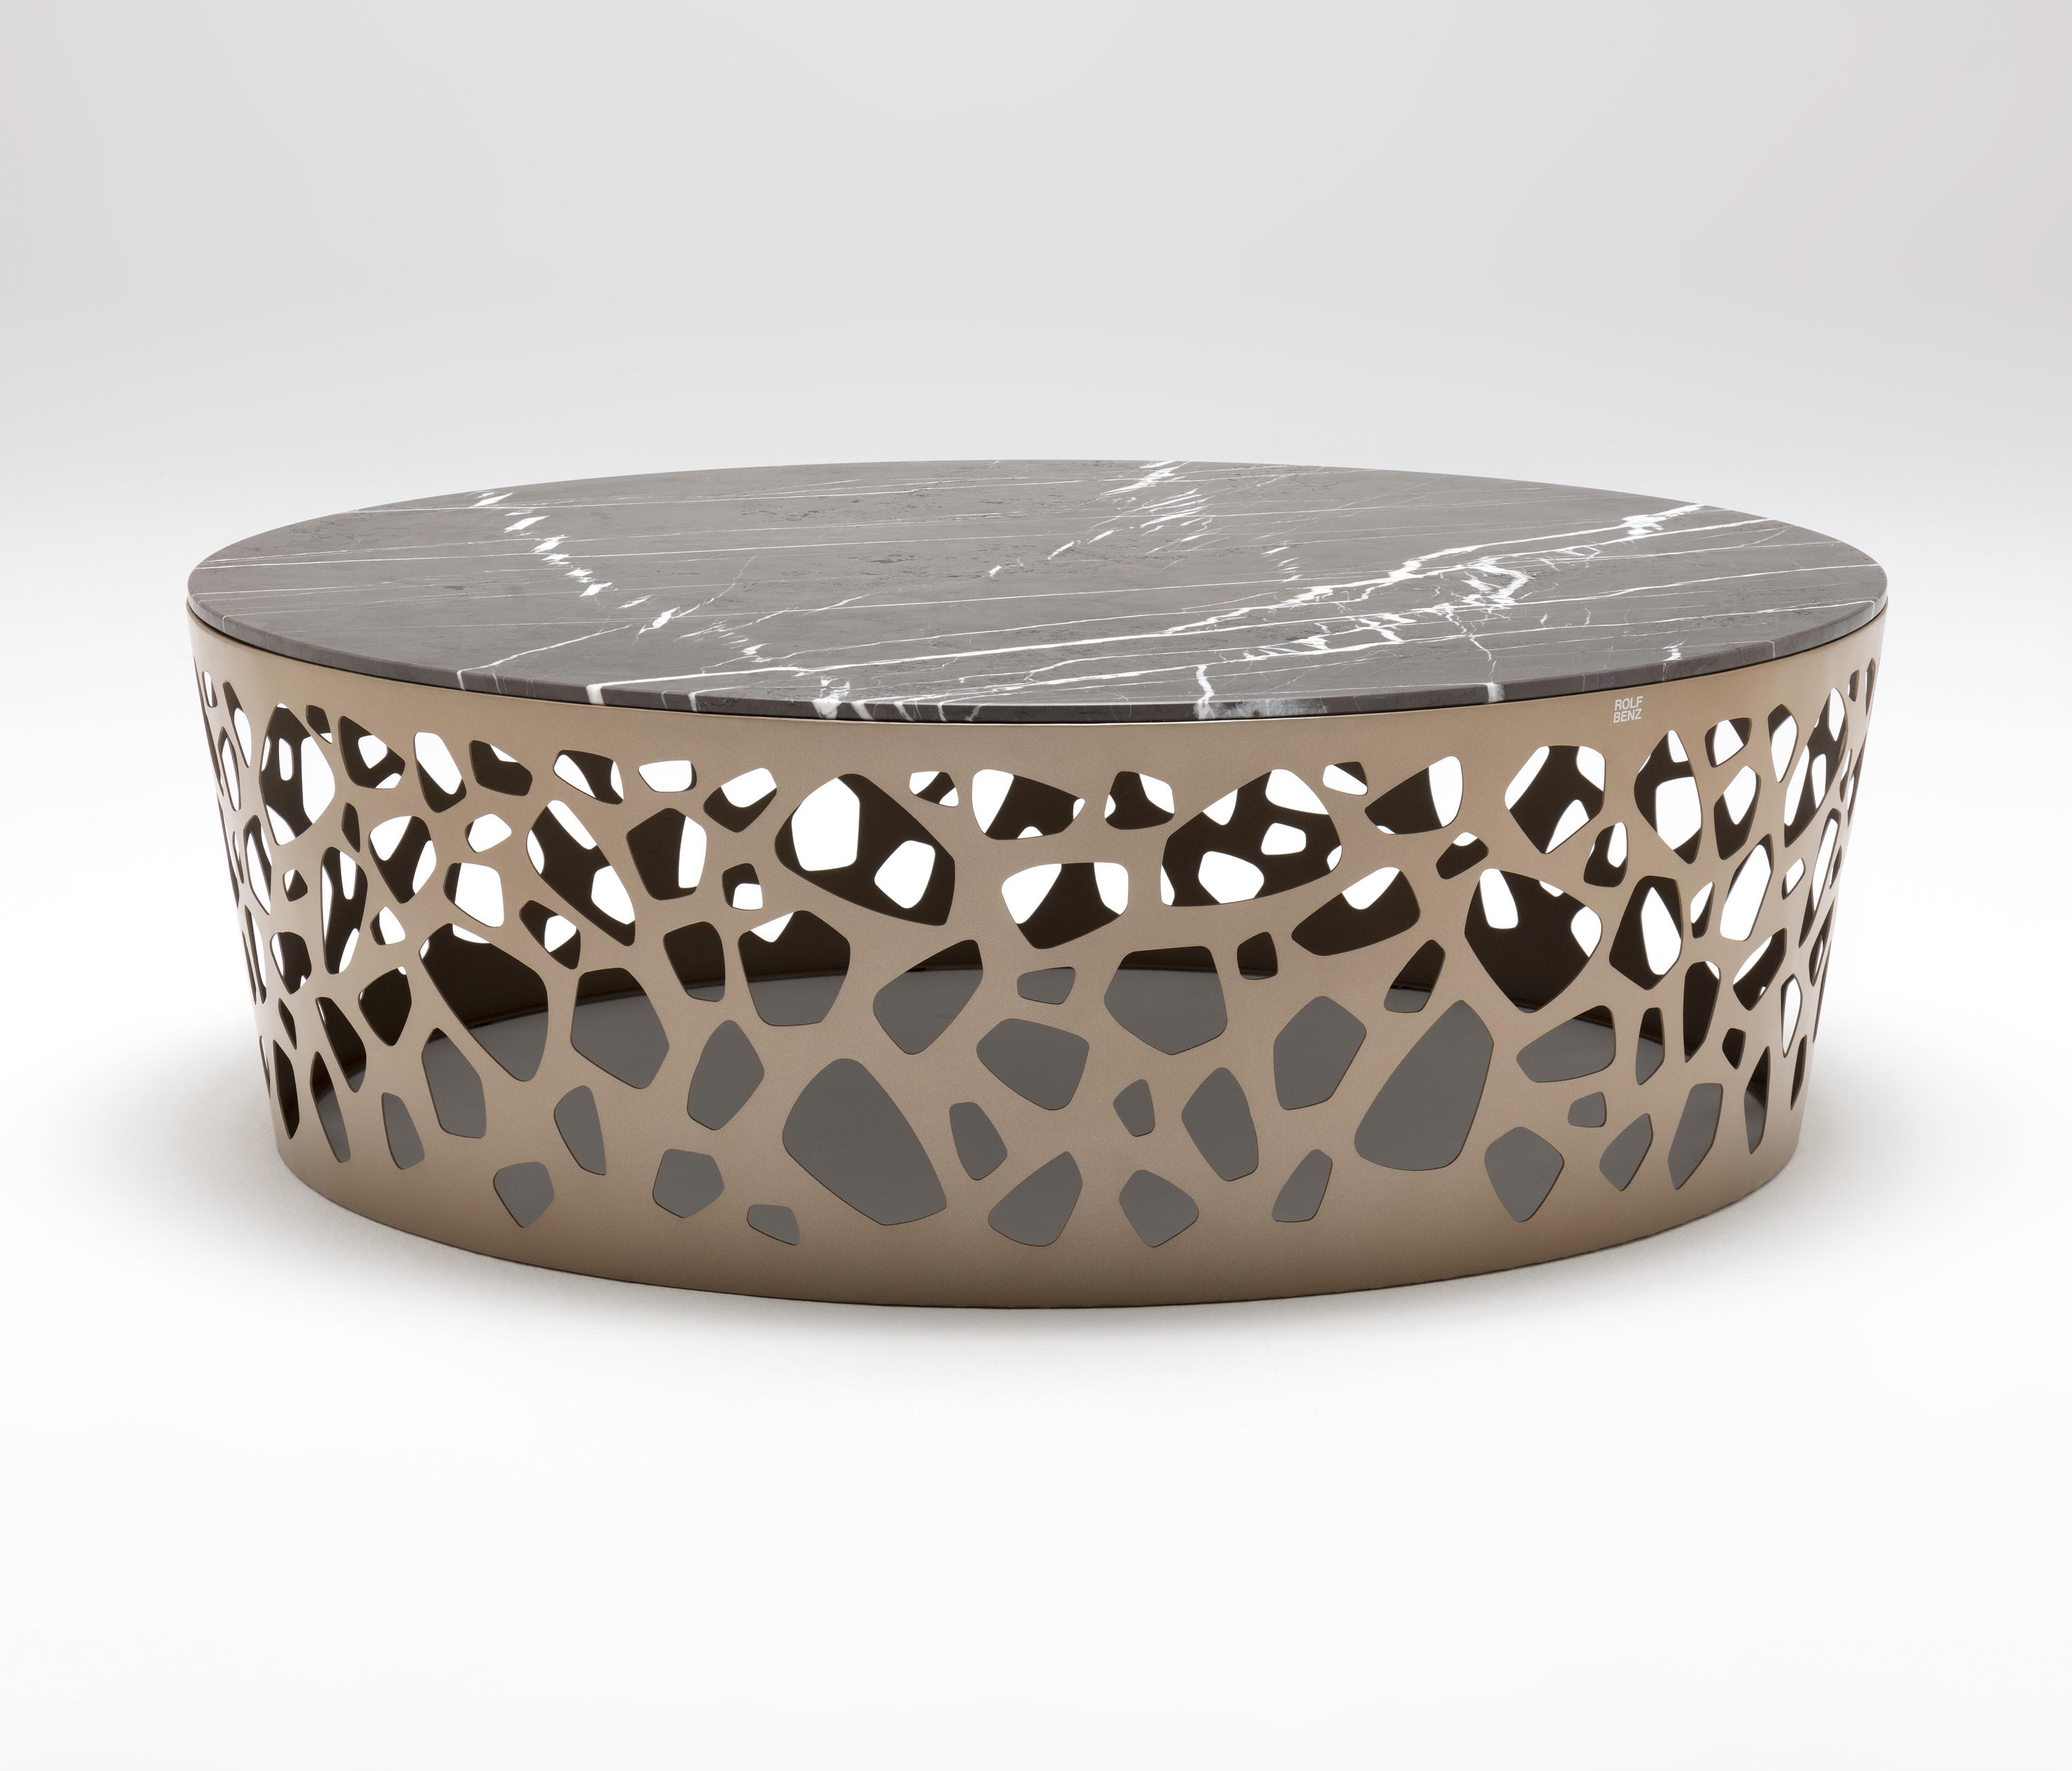 Rolf Benz 926 Coffee Tables From Rolf Benz Architonic